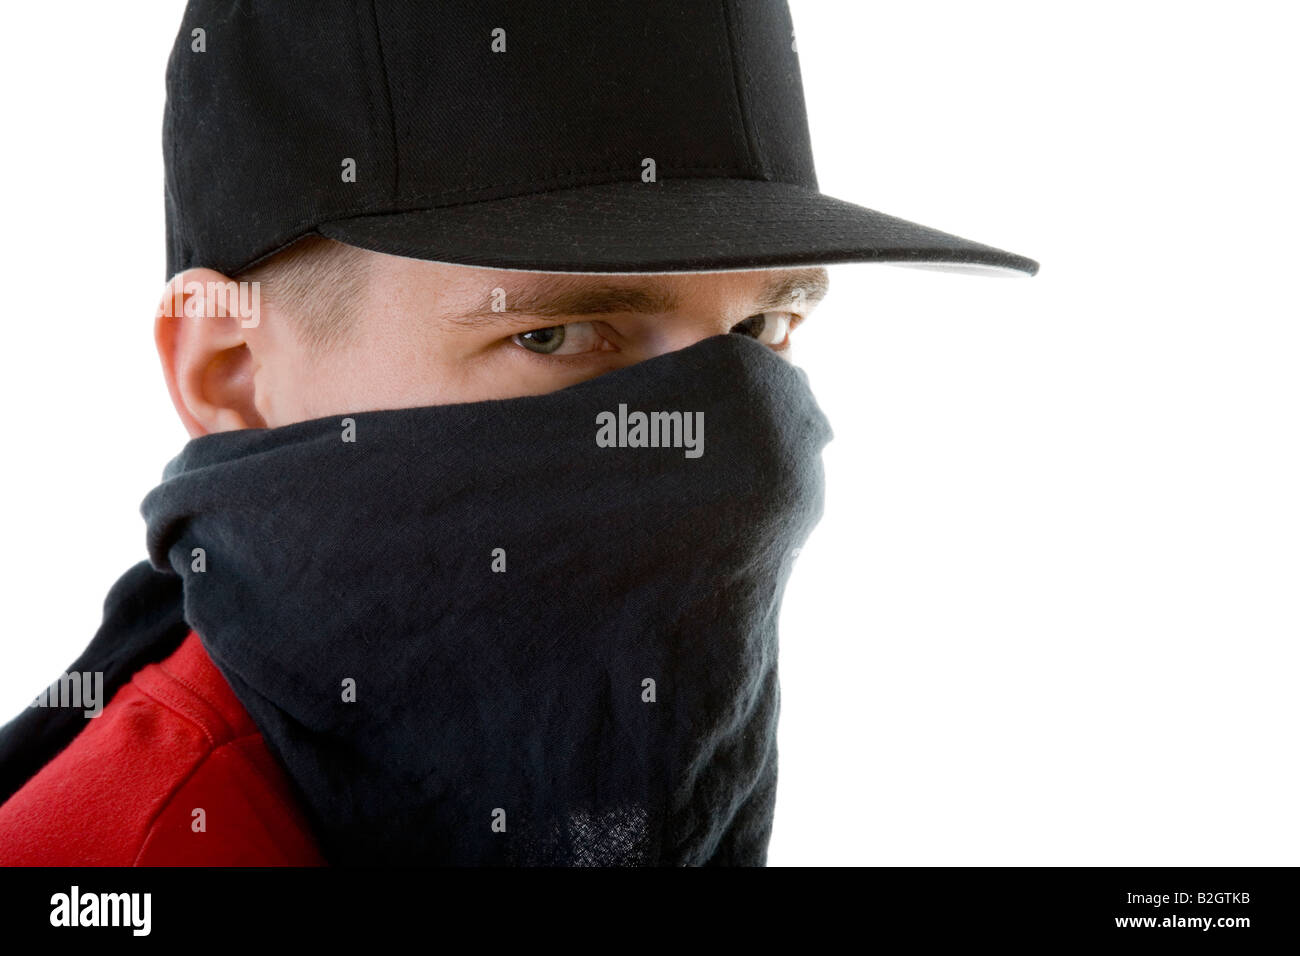 portrait young man mummery enveloped mantled people portrait - Stock Image